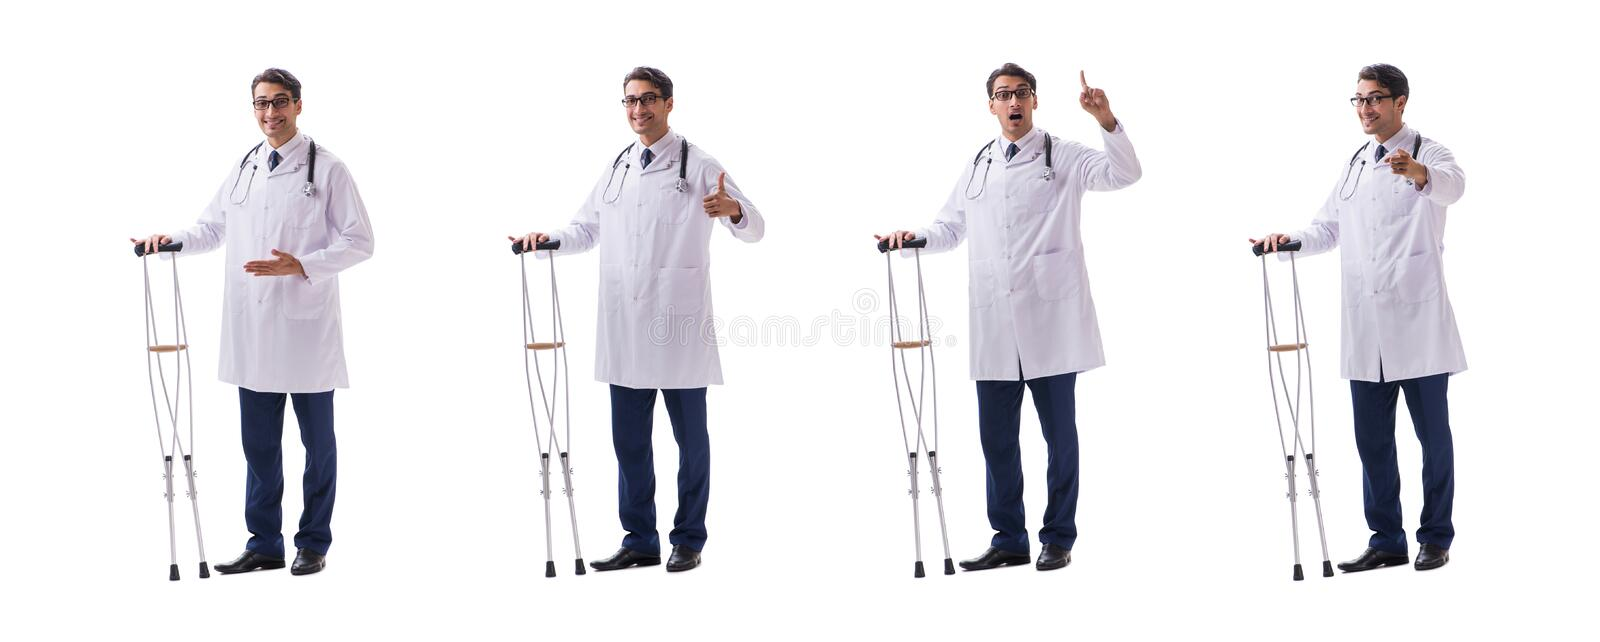 The young doctor physician standing walking isolated on white background royalty free stock photography